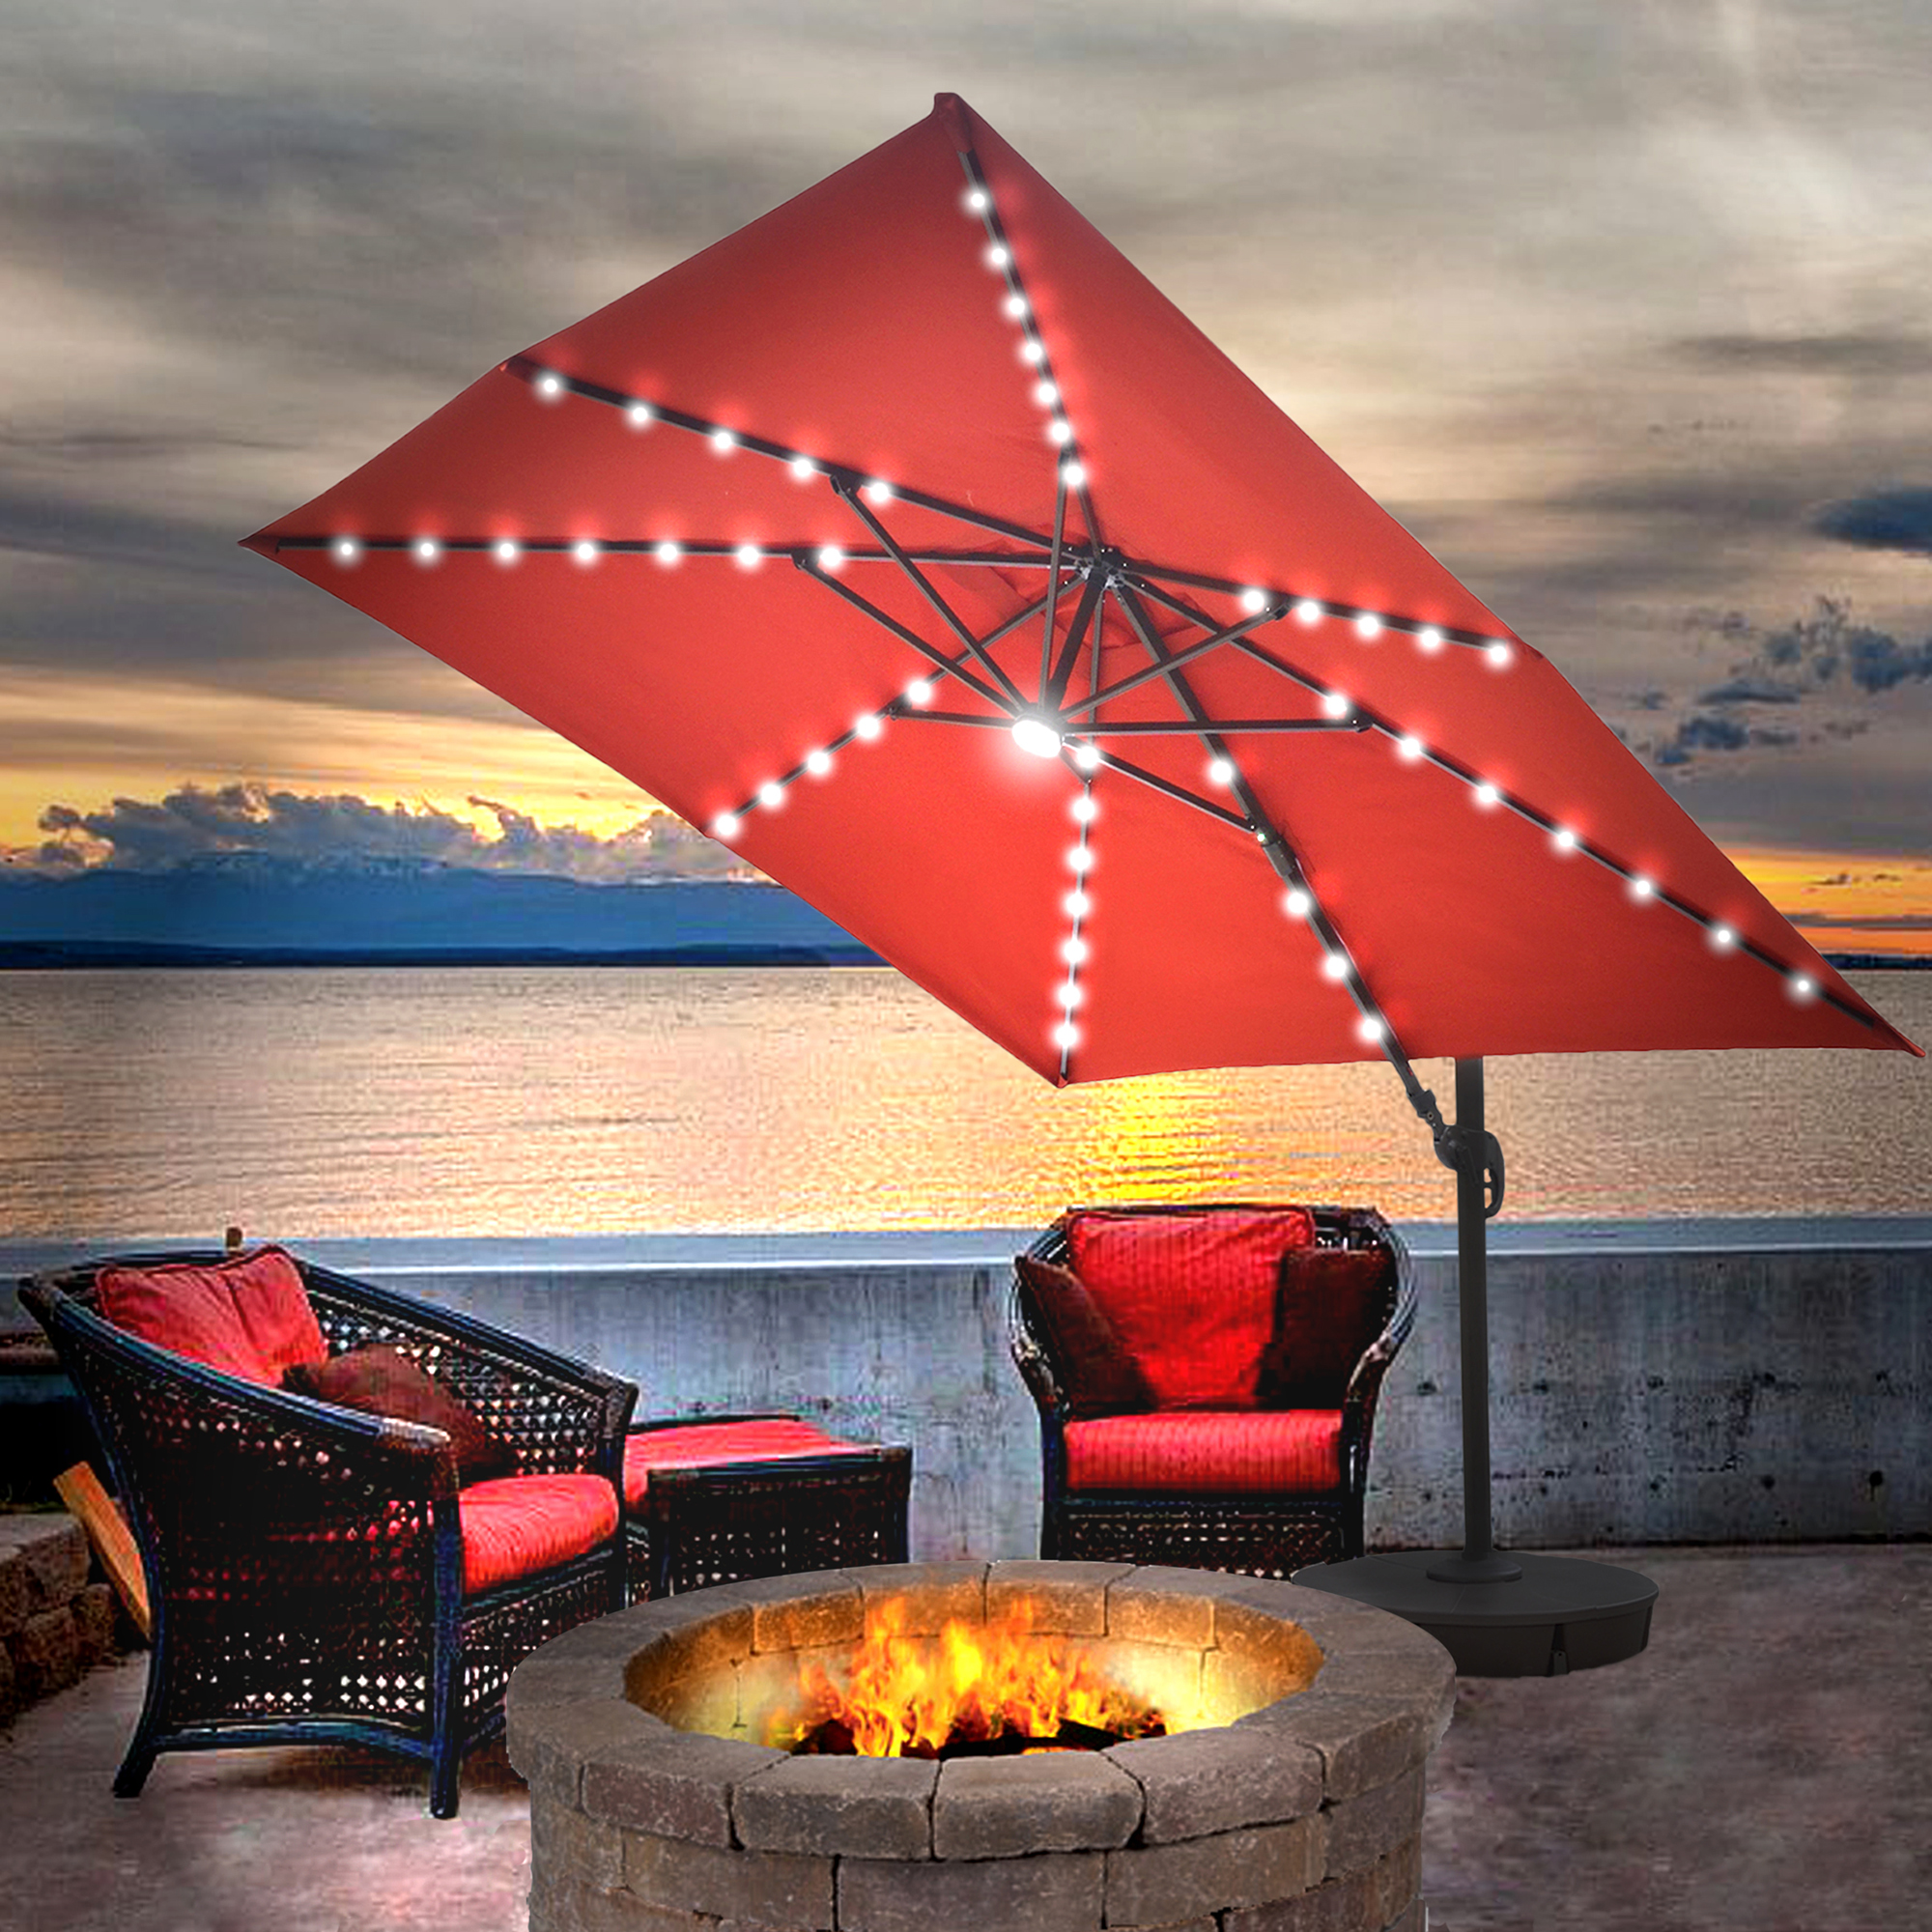 creative bed umbrellas home cantilever and bath most umbrella planning beyond in with patio design